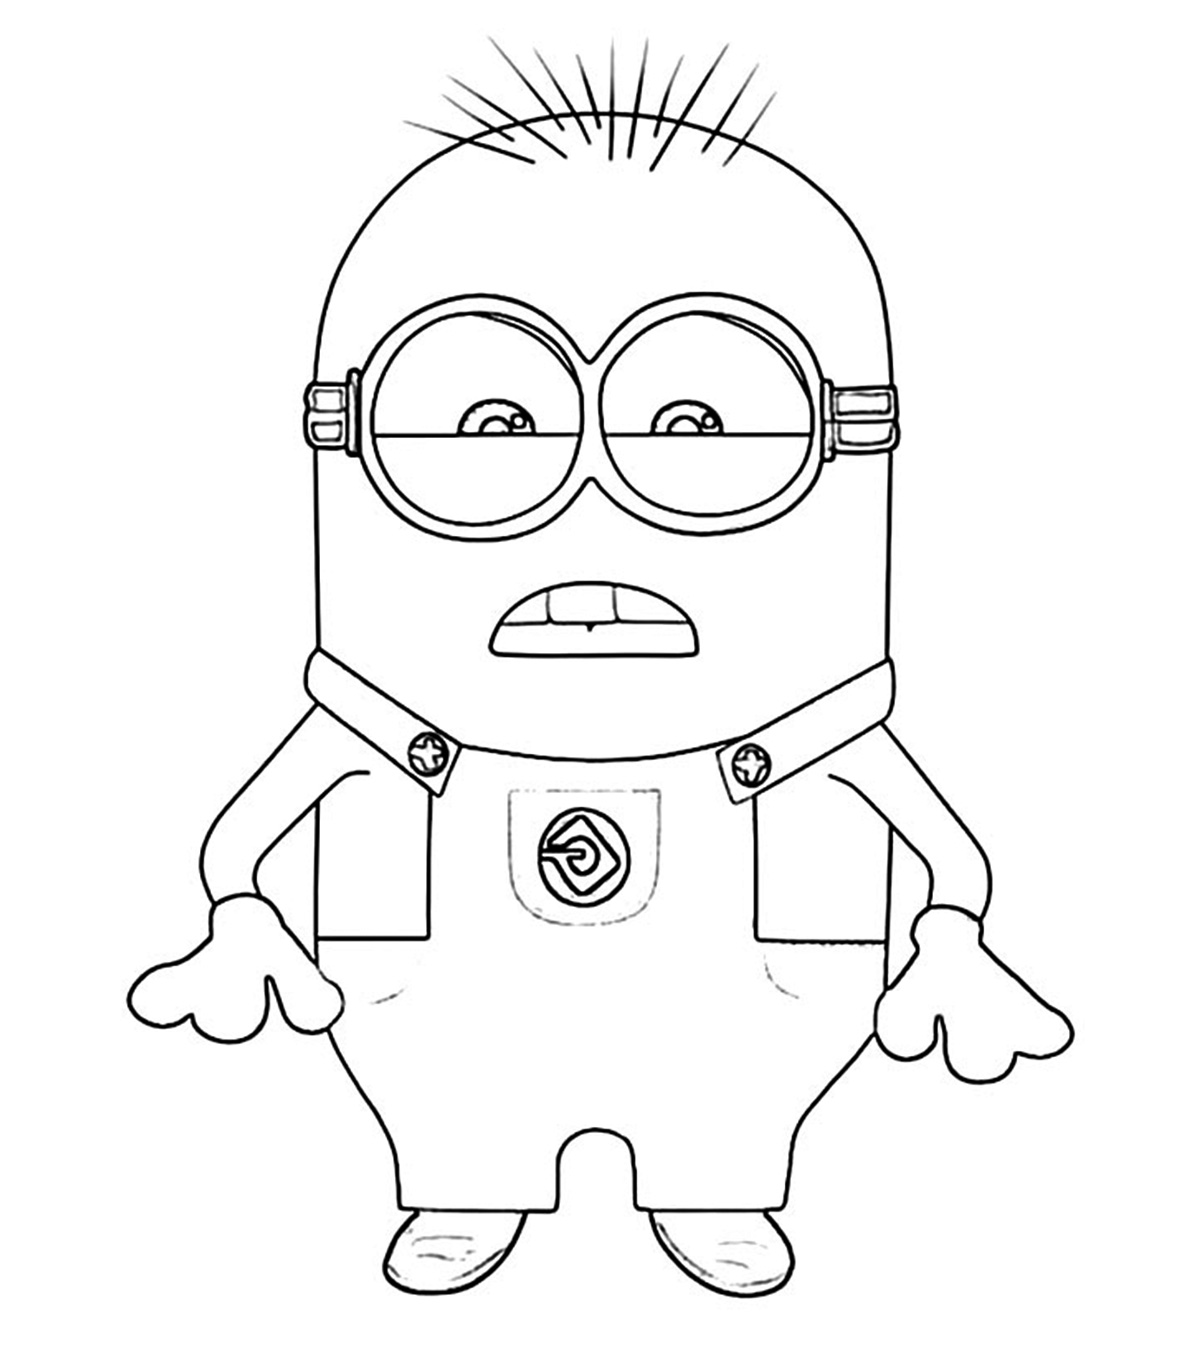 Agnes from Despicable Me coloring page | Free Printable Coloring Pages | 1350x1200